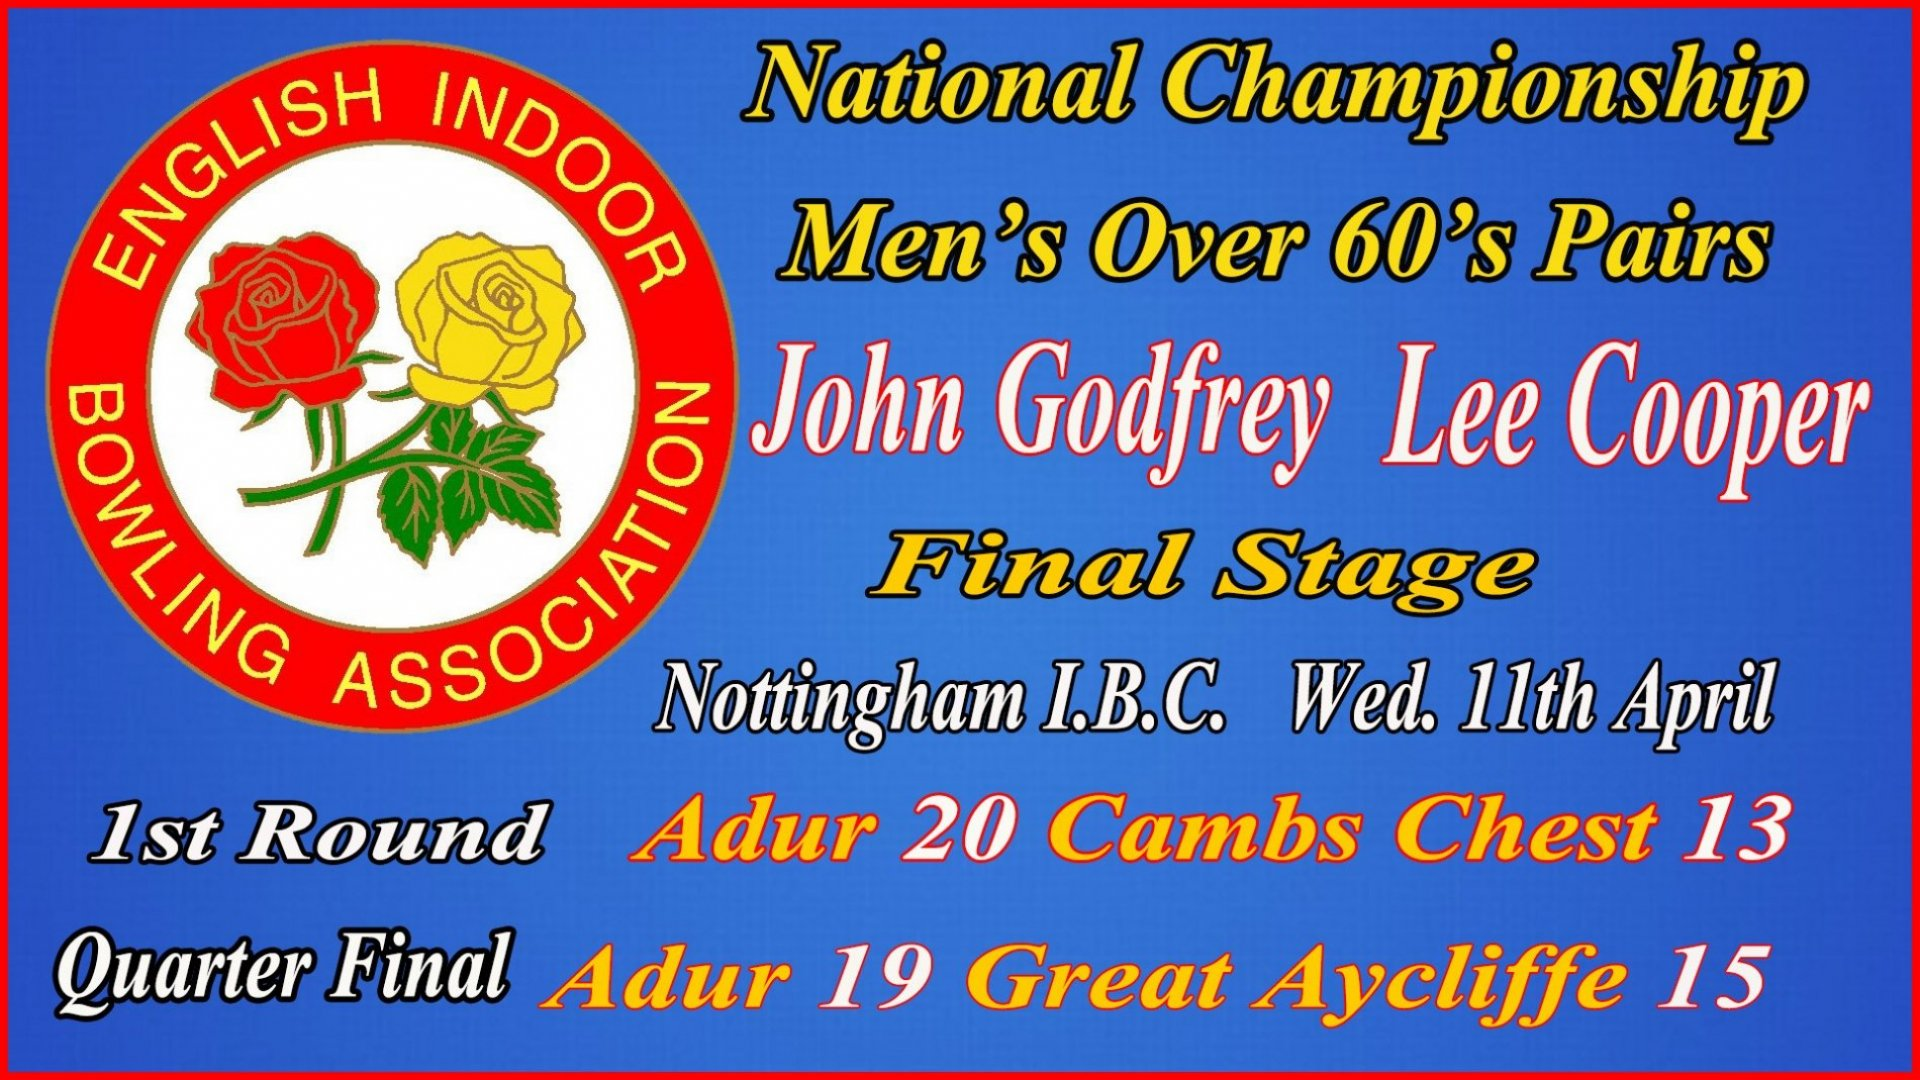 National Championship Men's Inter Club - Over 60's Pairs - 1st & Quater Final Rounds John Godfrey & Lee Cooper v's Cambs Chest